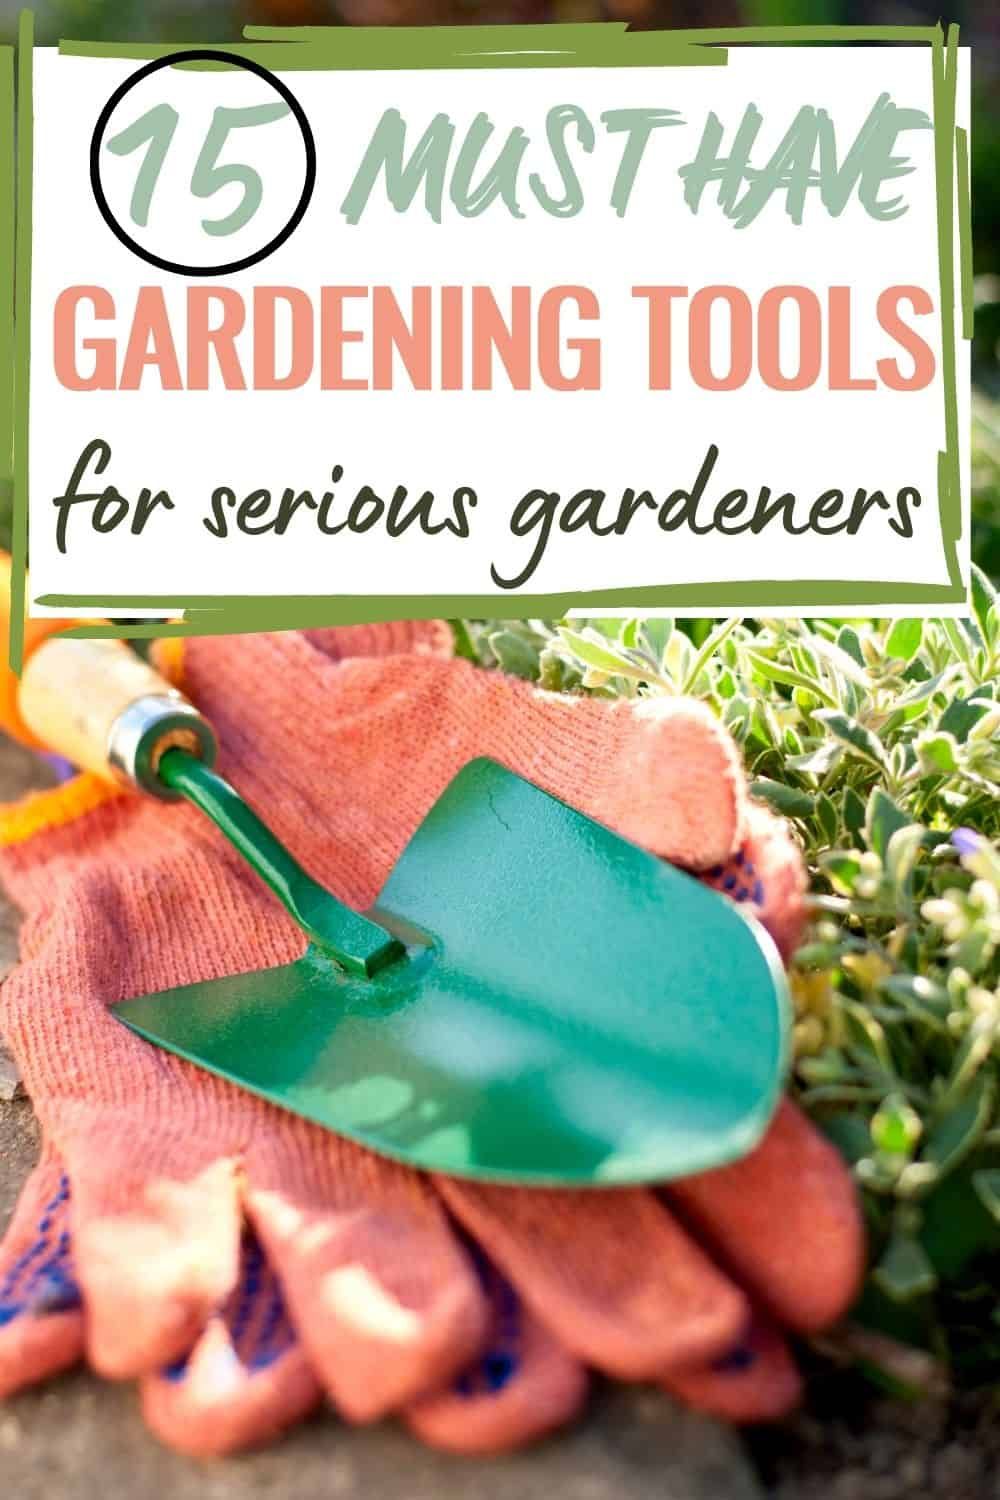 15 must have gardening tools for serious gardeners